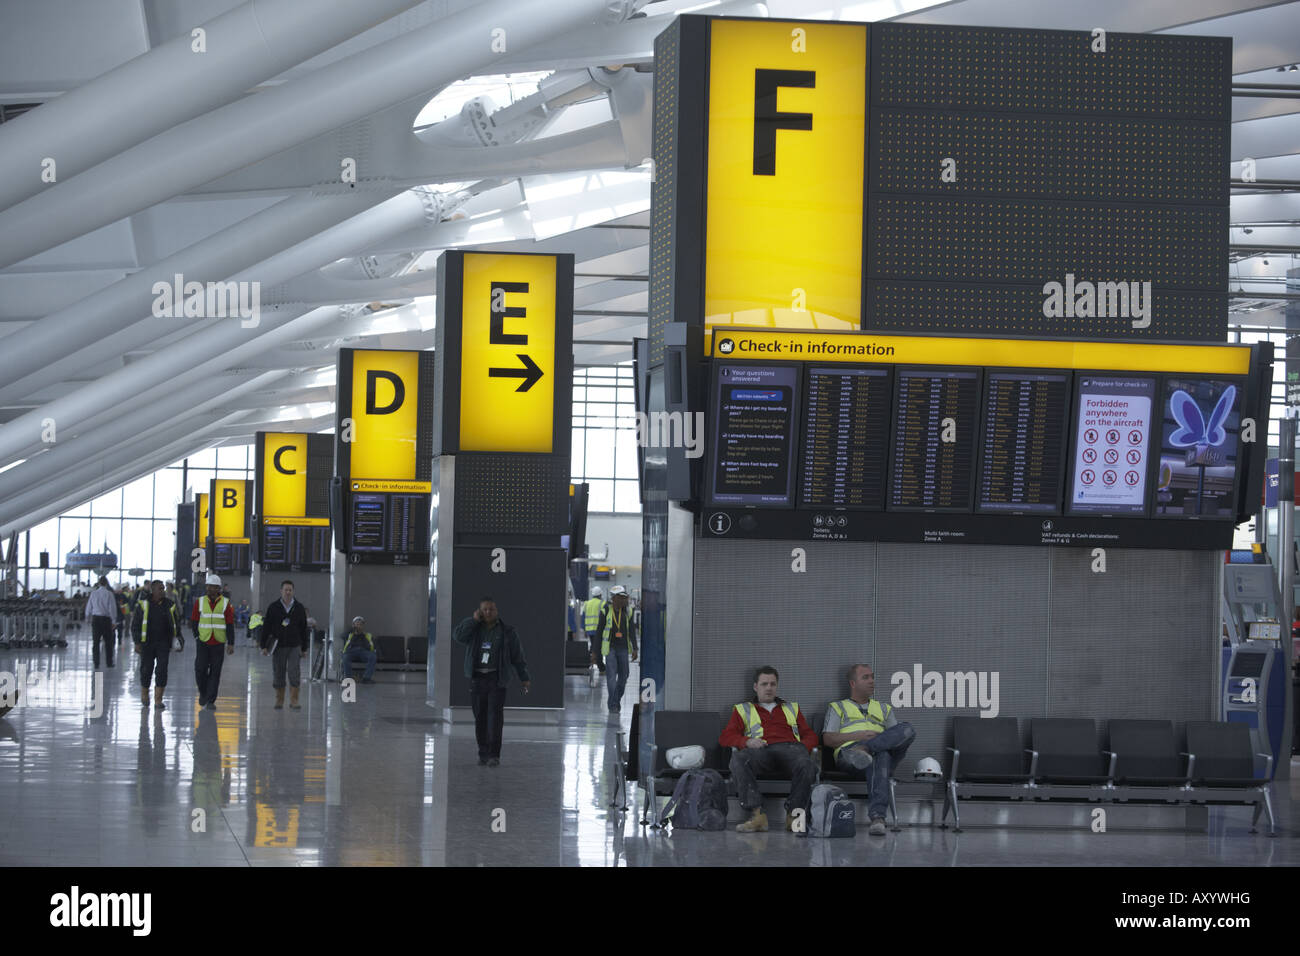 Flight departures information boards in landside Departures area newly opened London Heathrow Airport's Terminal - Stock Image